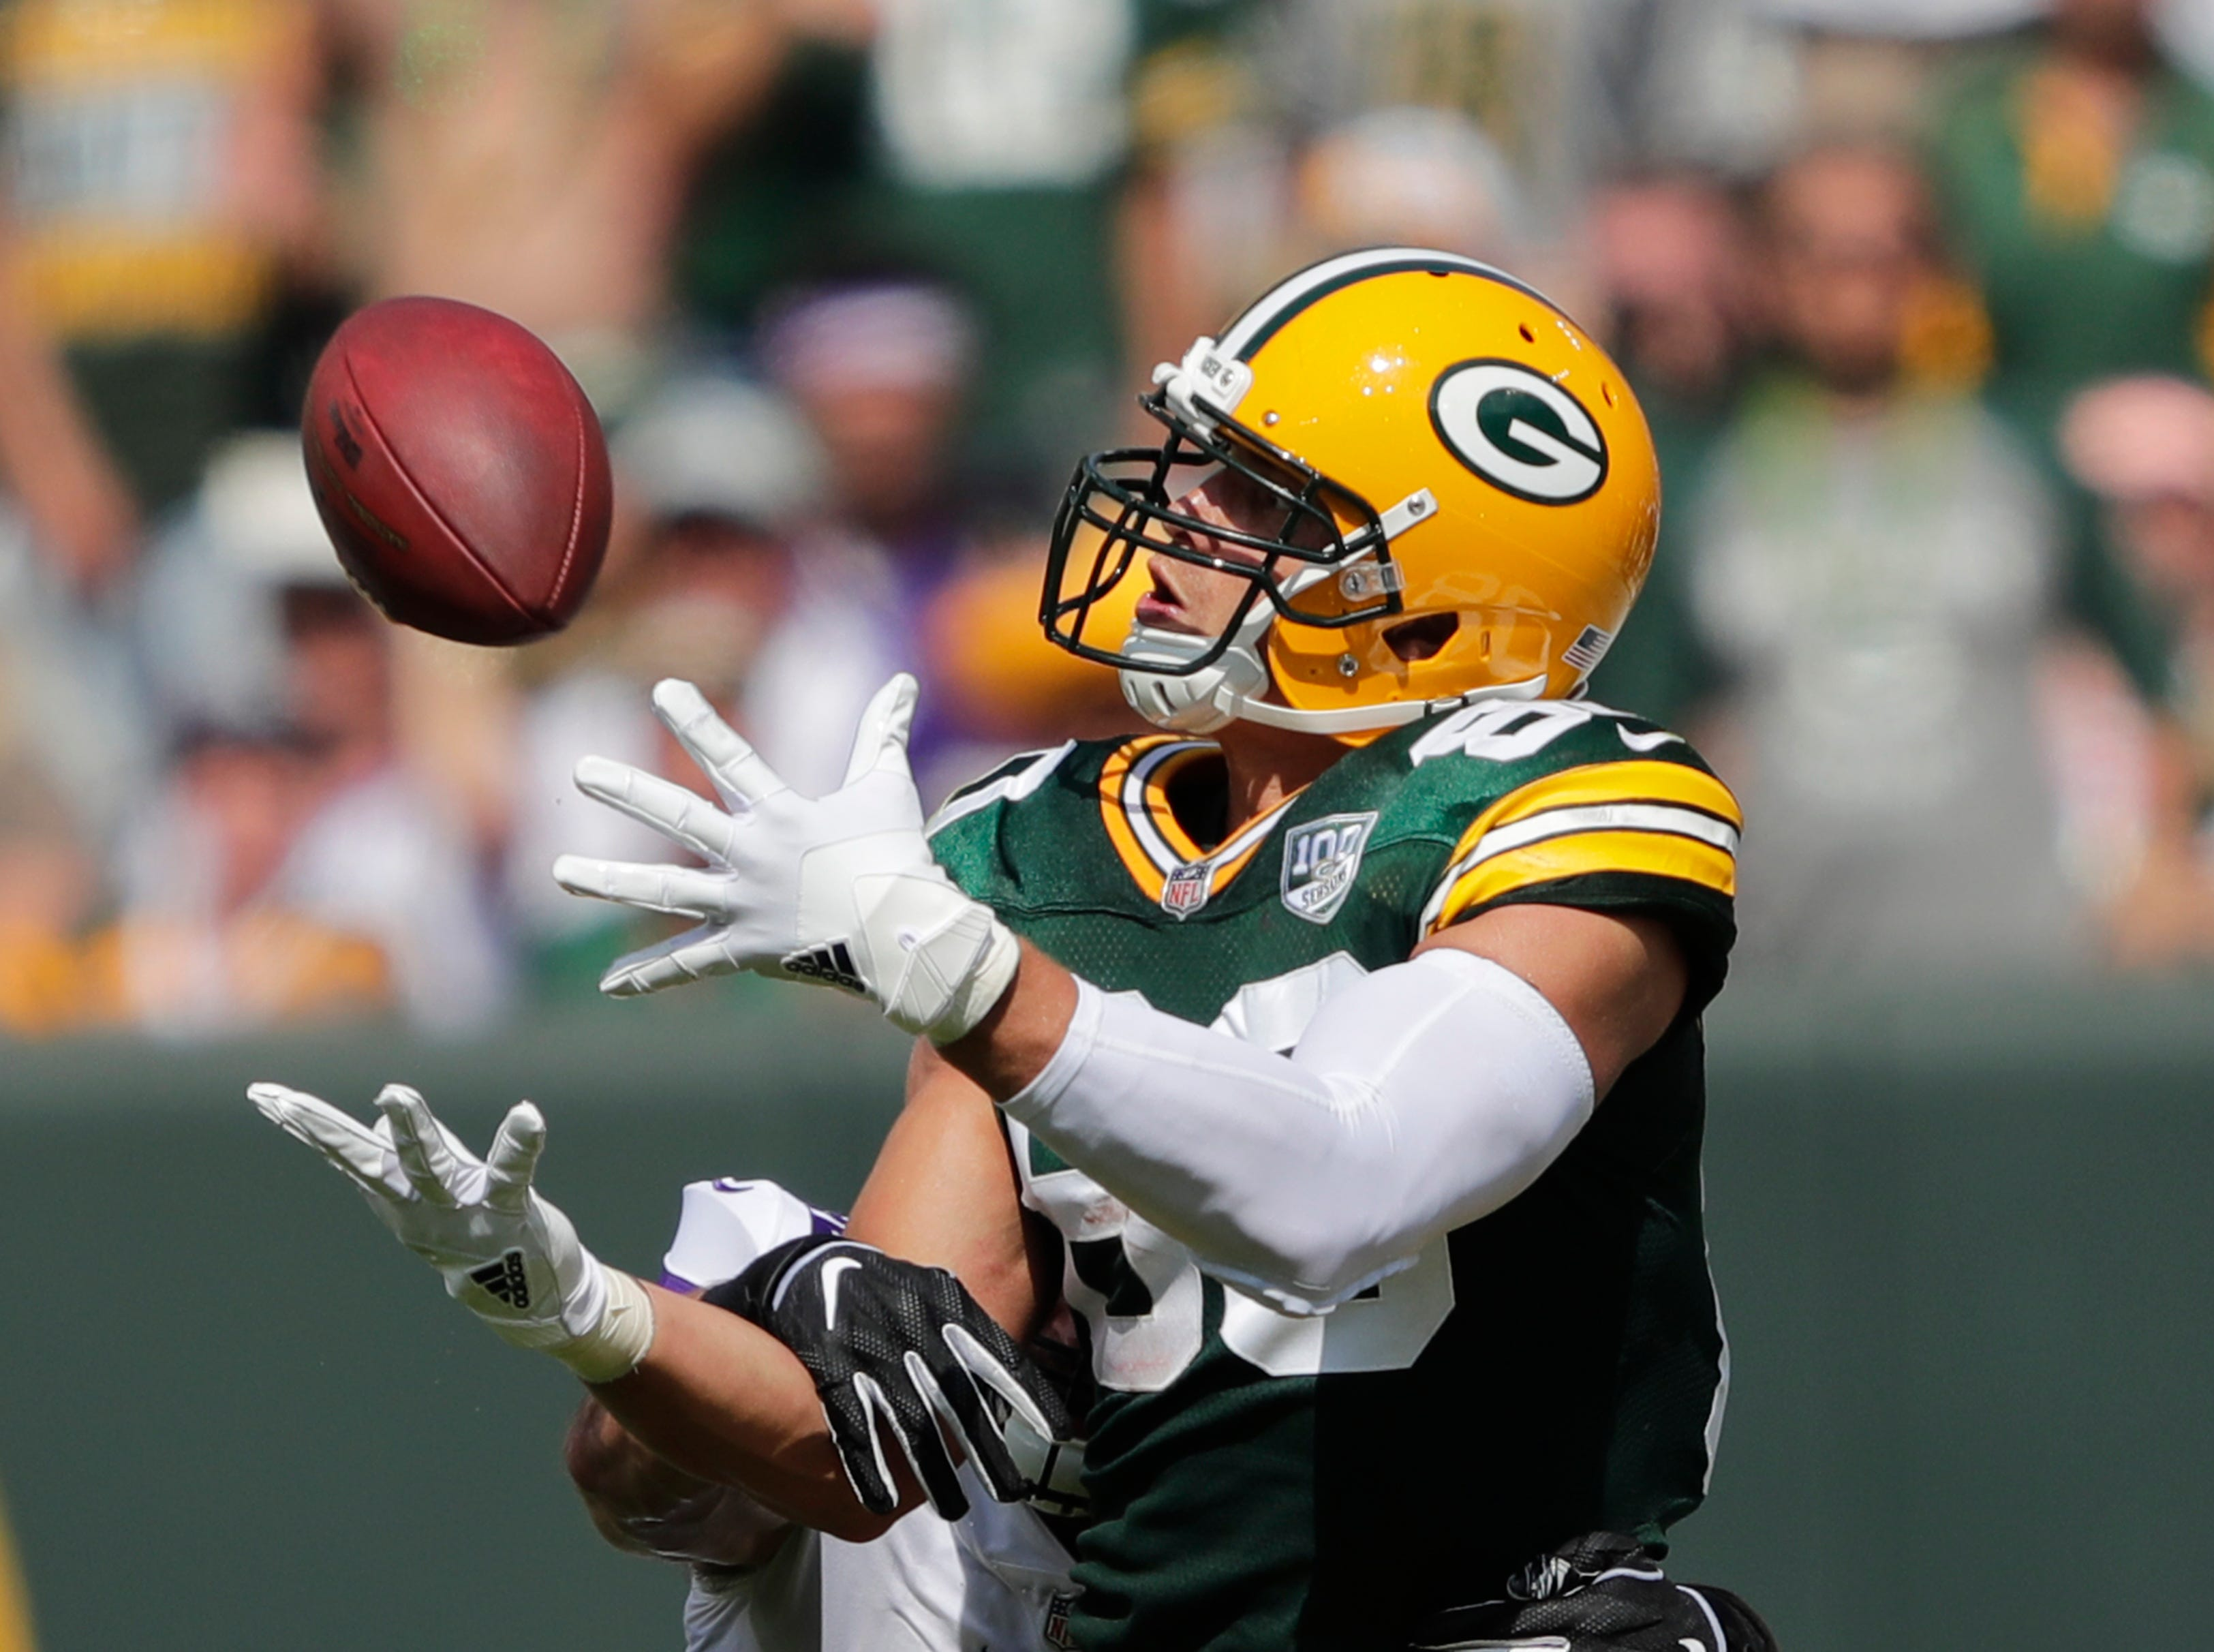 Green Bay Packers tight end Jimmy Graham (80) can't make a catch against Minnesota Vikings linebacker Ben Gedeon (42) in the second quarter during their football game Sunday, Sept. 16, 2018, at Lambeau Field in Green Bay, Wis. Dan Powers/USA TODAY NETWORK-Wisconsin